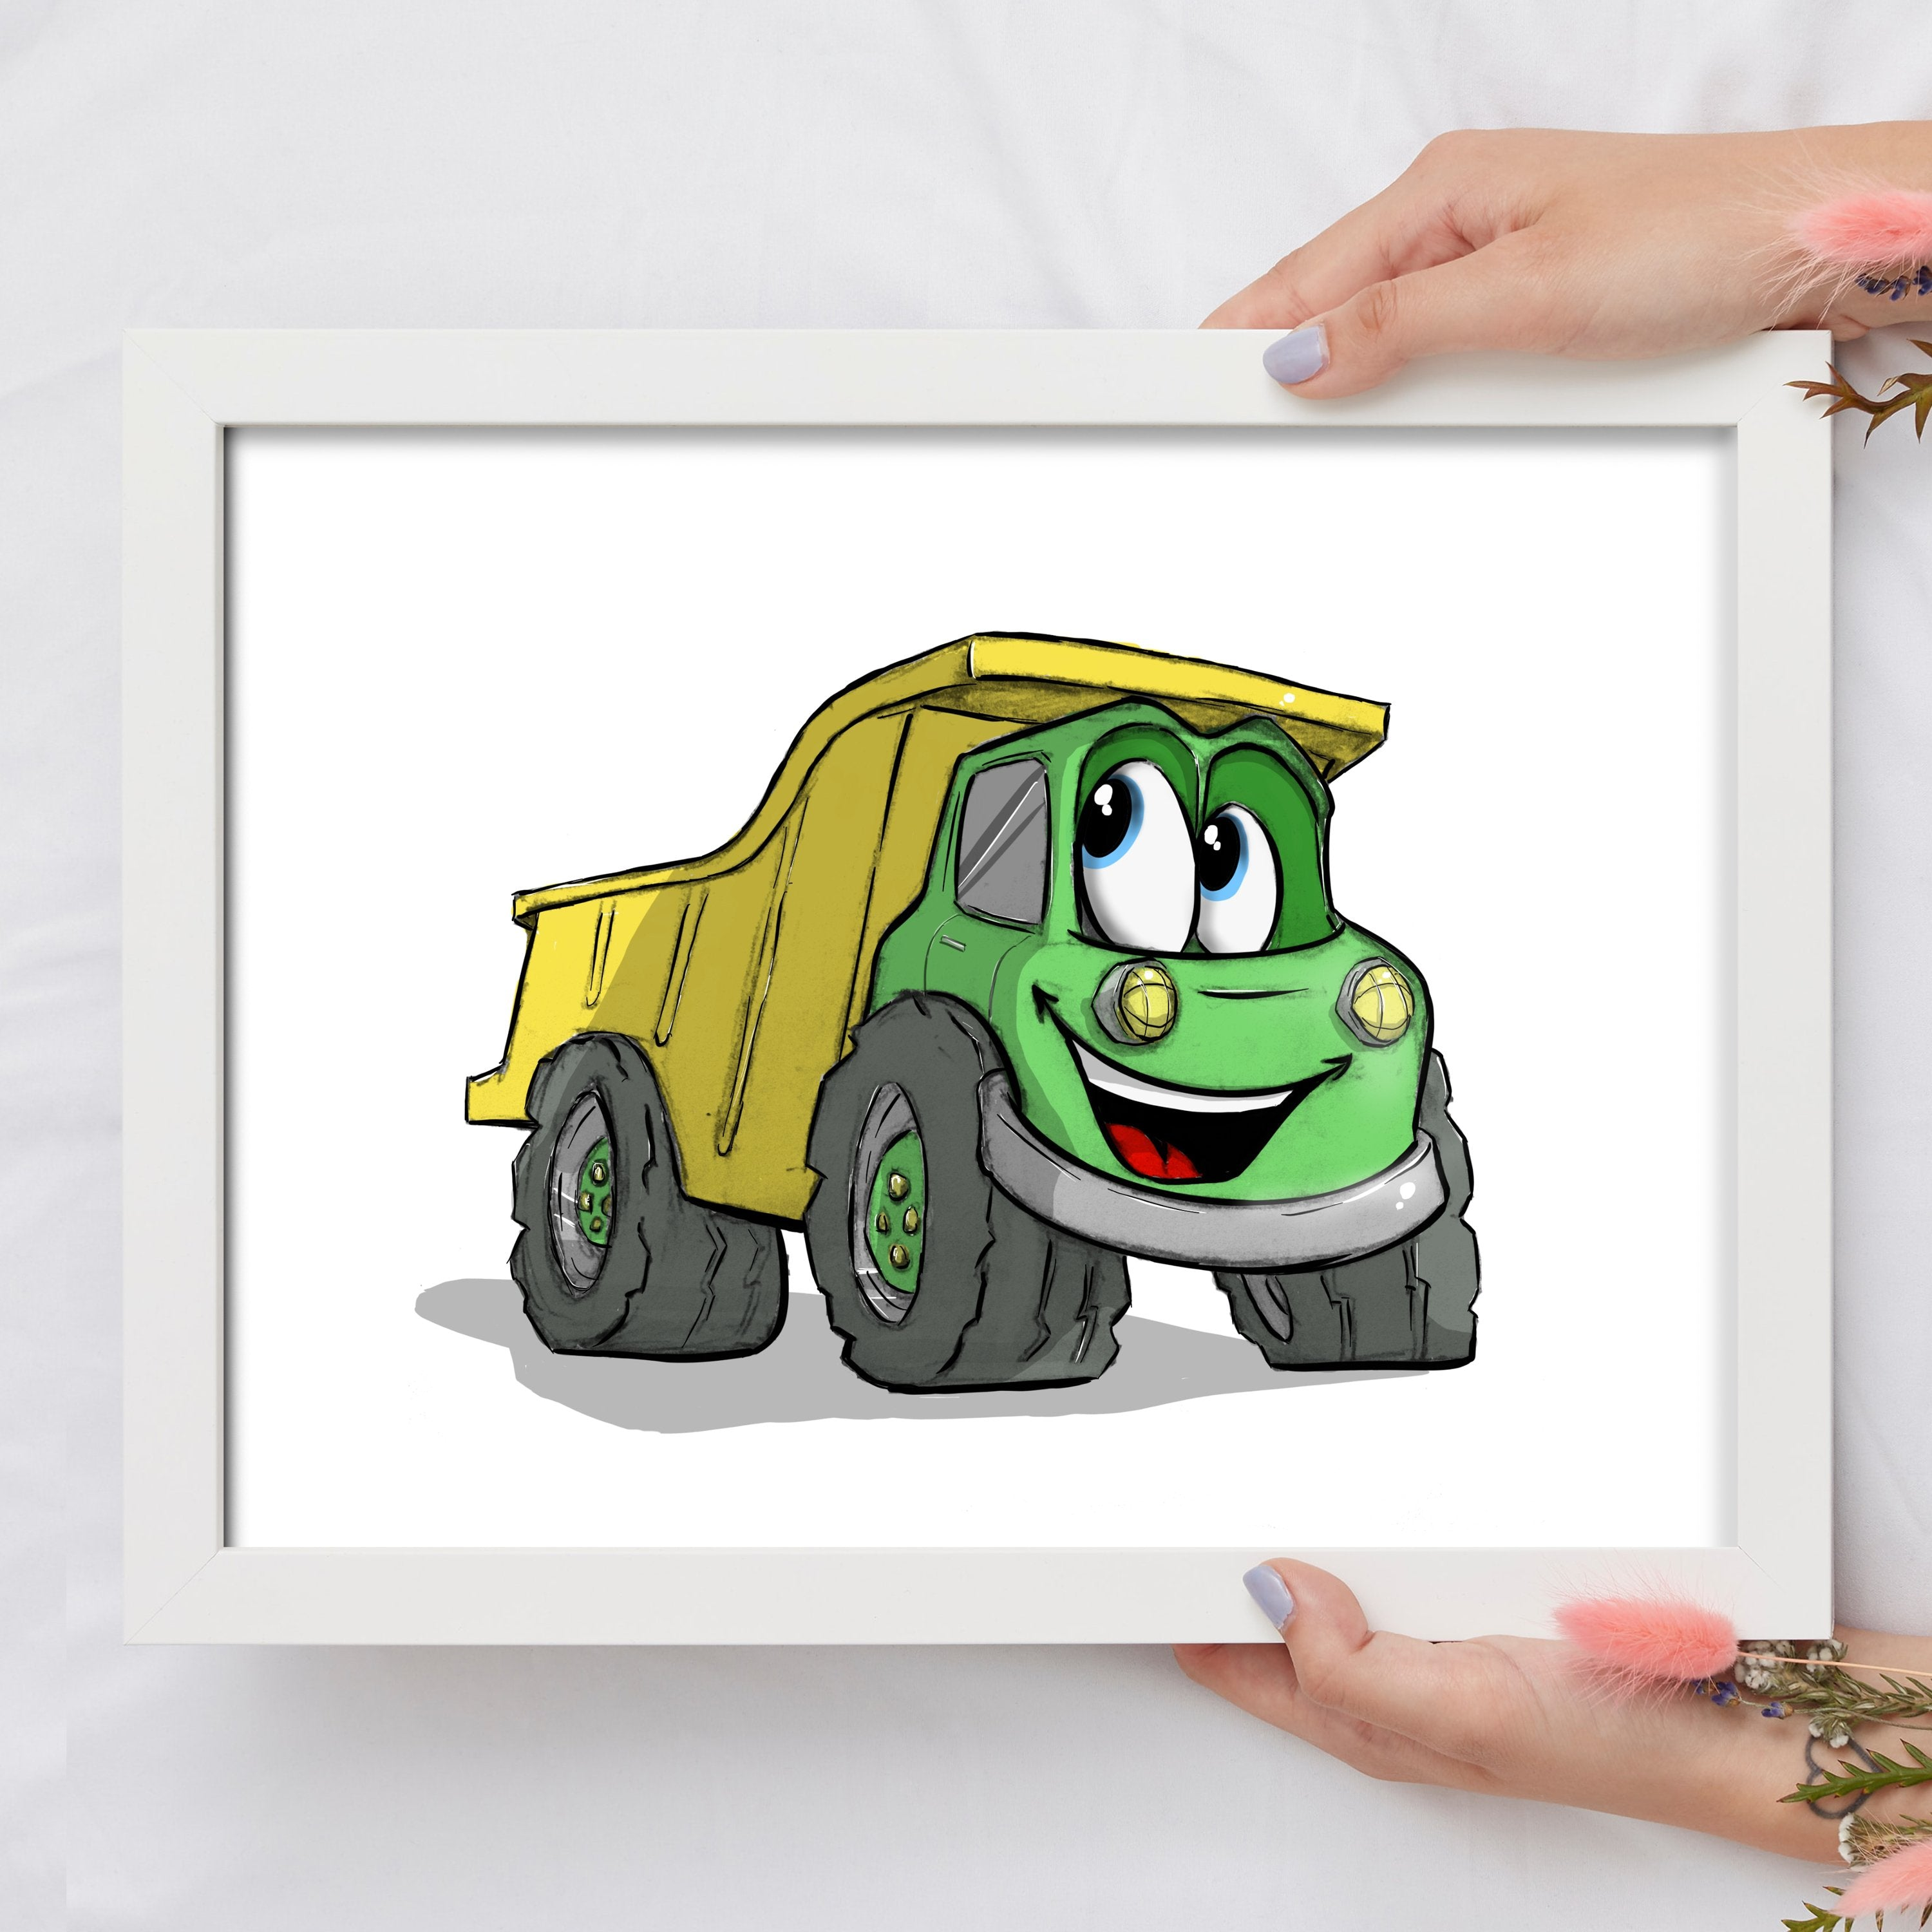 Adorable Trucks - Dump Truck (Framed) - Tiny Dream Factory